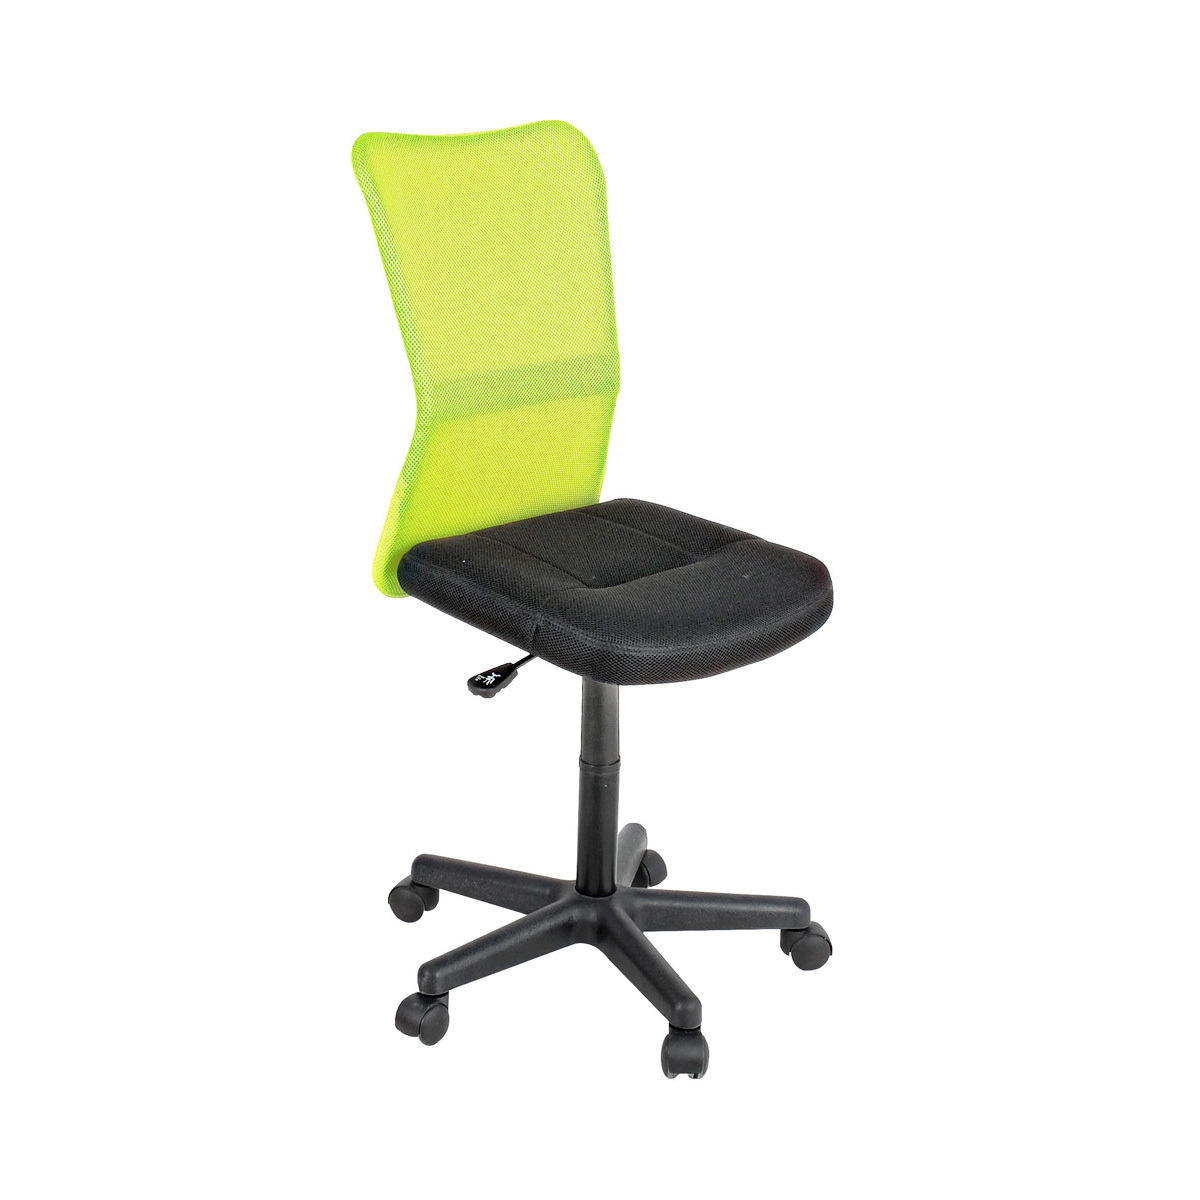 Photos 1: Bizzotto Office chair with wheels - green lime 0710136